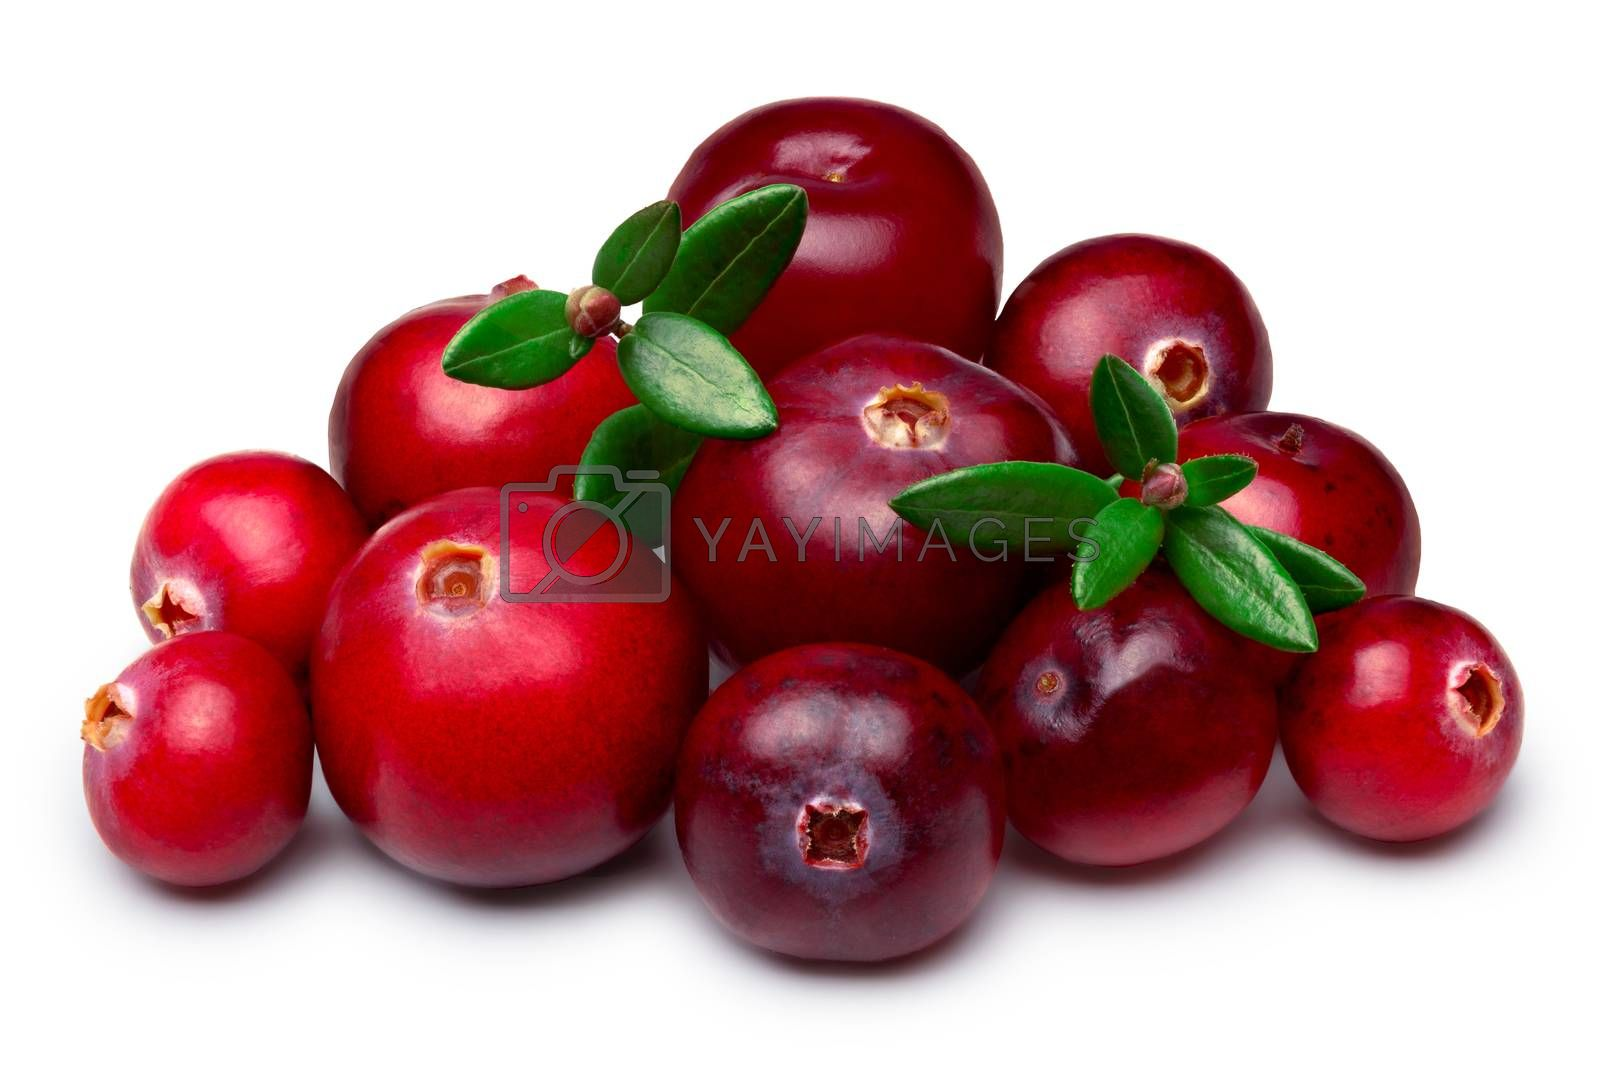 Heap of wild cranberries with leaves. Clipping paths, infinite depth of field, retouched.